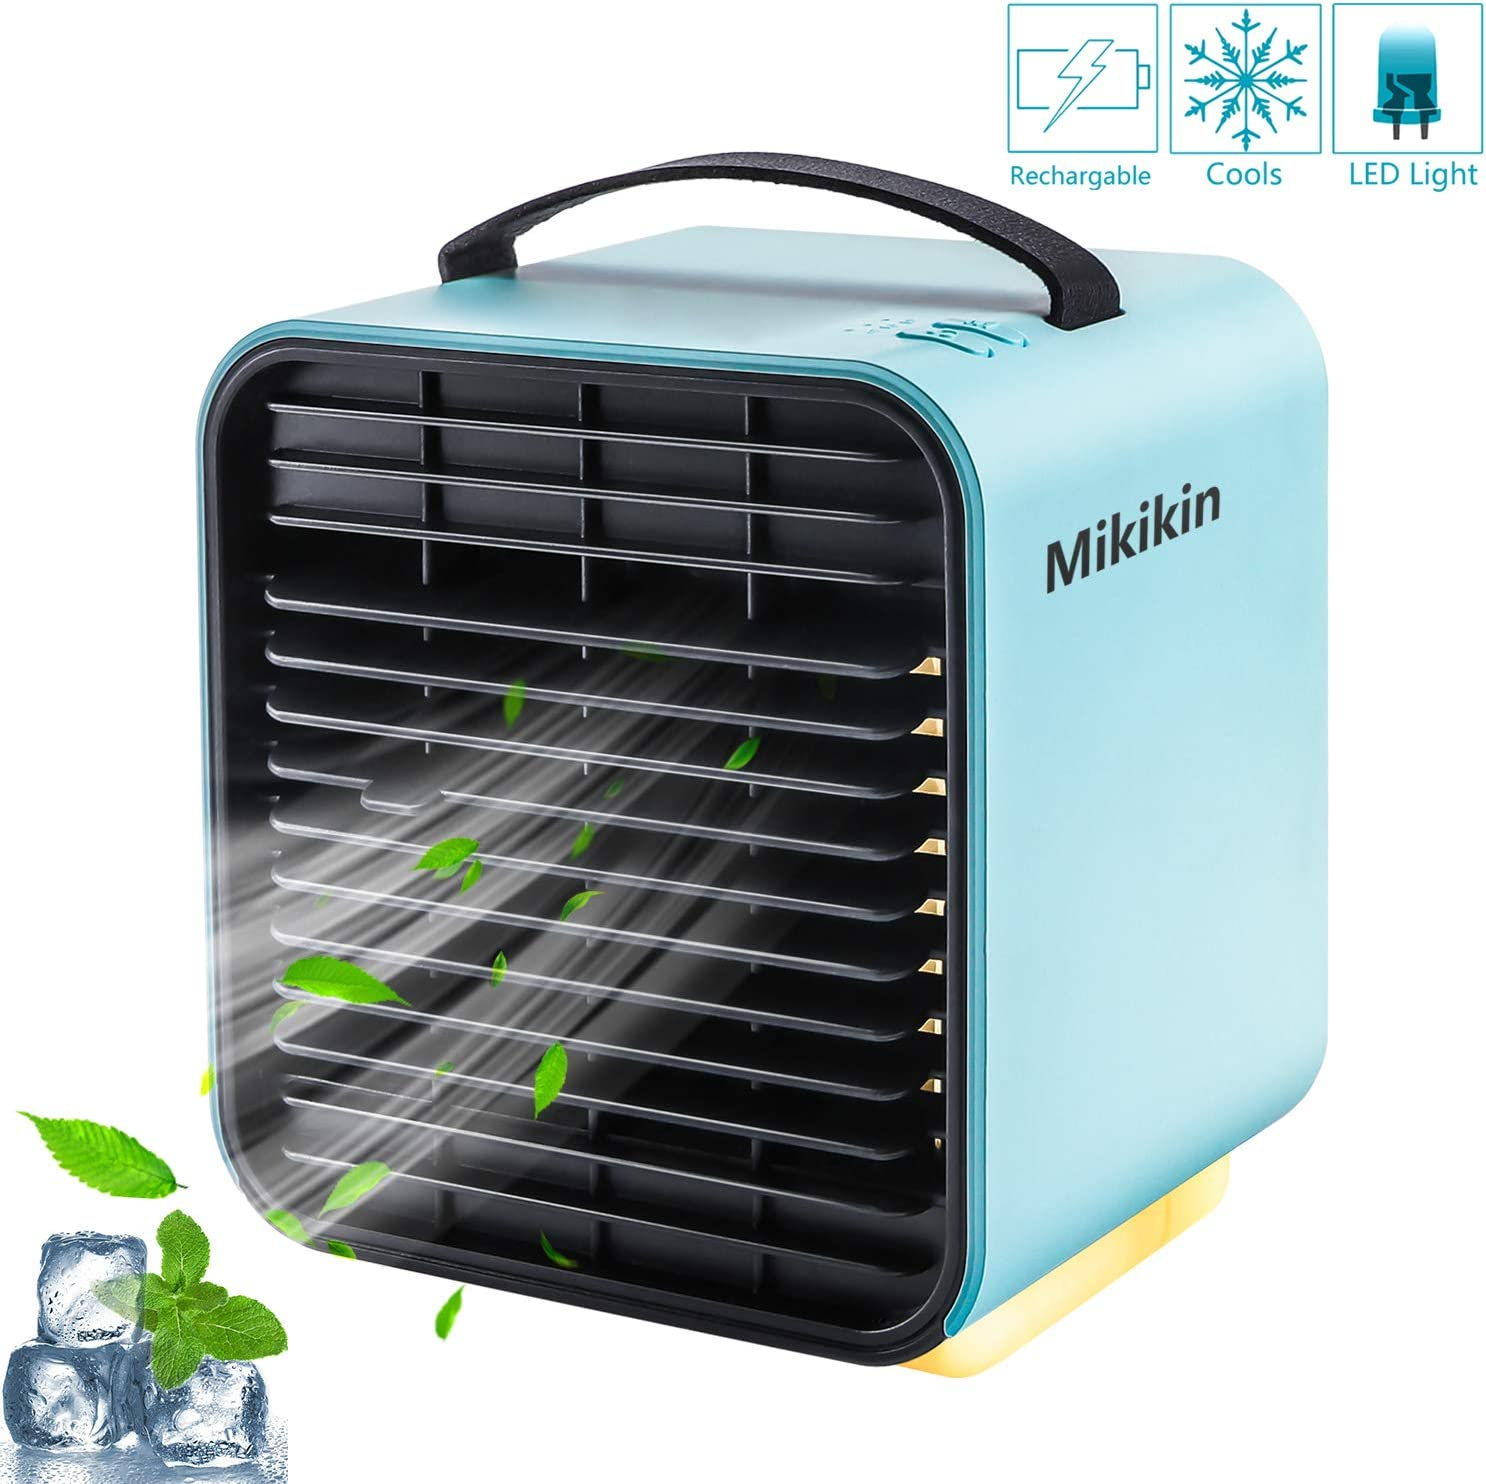 Mikikin Portable Air Conditioner Fan, Personal Space Evaporative Air Cooler Rechargeable USB Desk Fan with LED Light, 3 Speeds, Quiet Humidifier Misting Cooling Fan for Bedroom, Home, Office, Blue